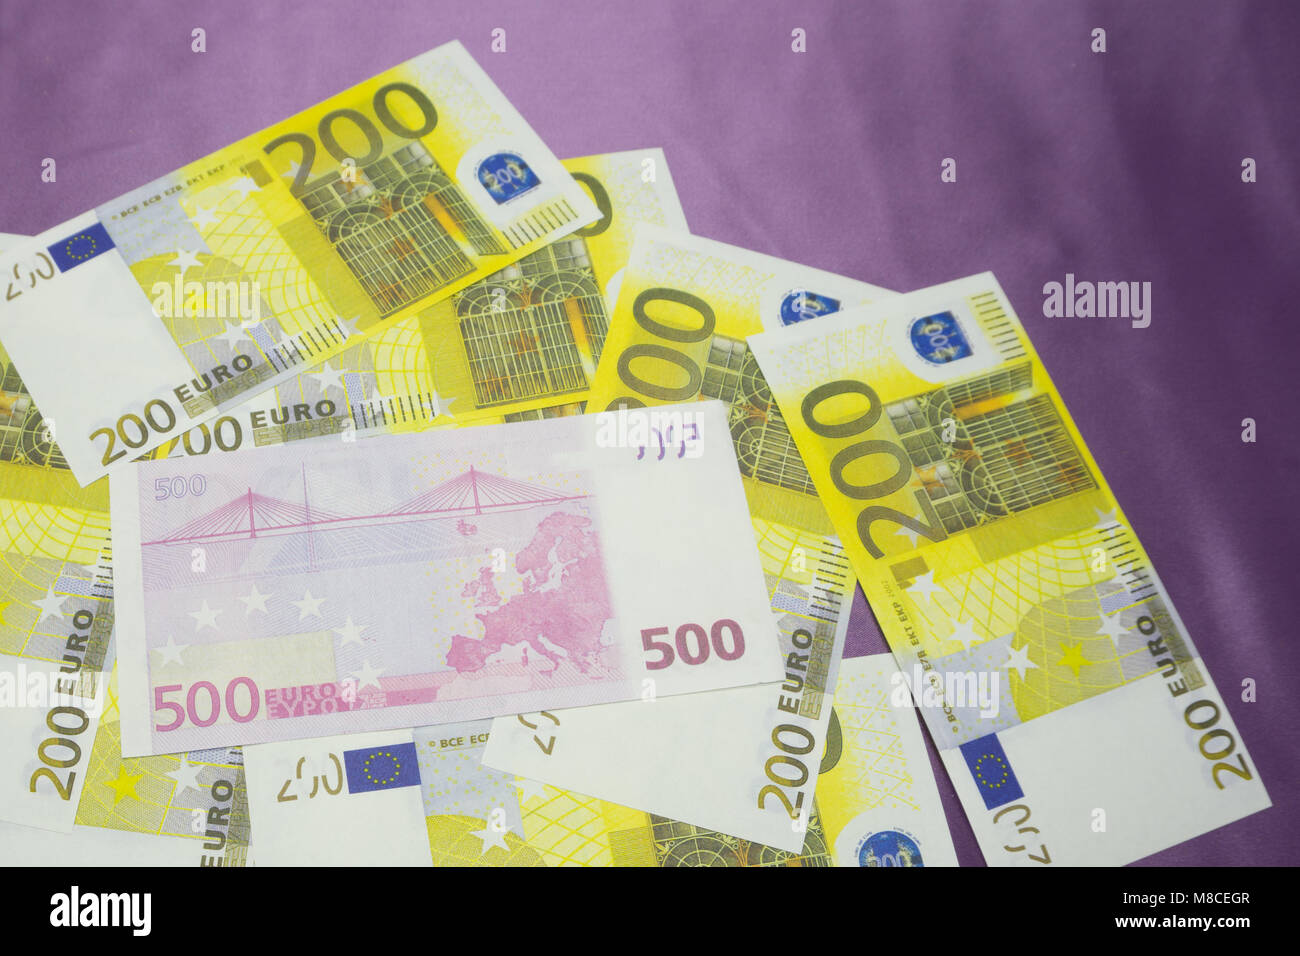 Various Euro banknotes of 200 and 500 Euro banknotes in a continuous layer Stock Photo